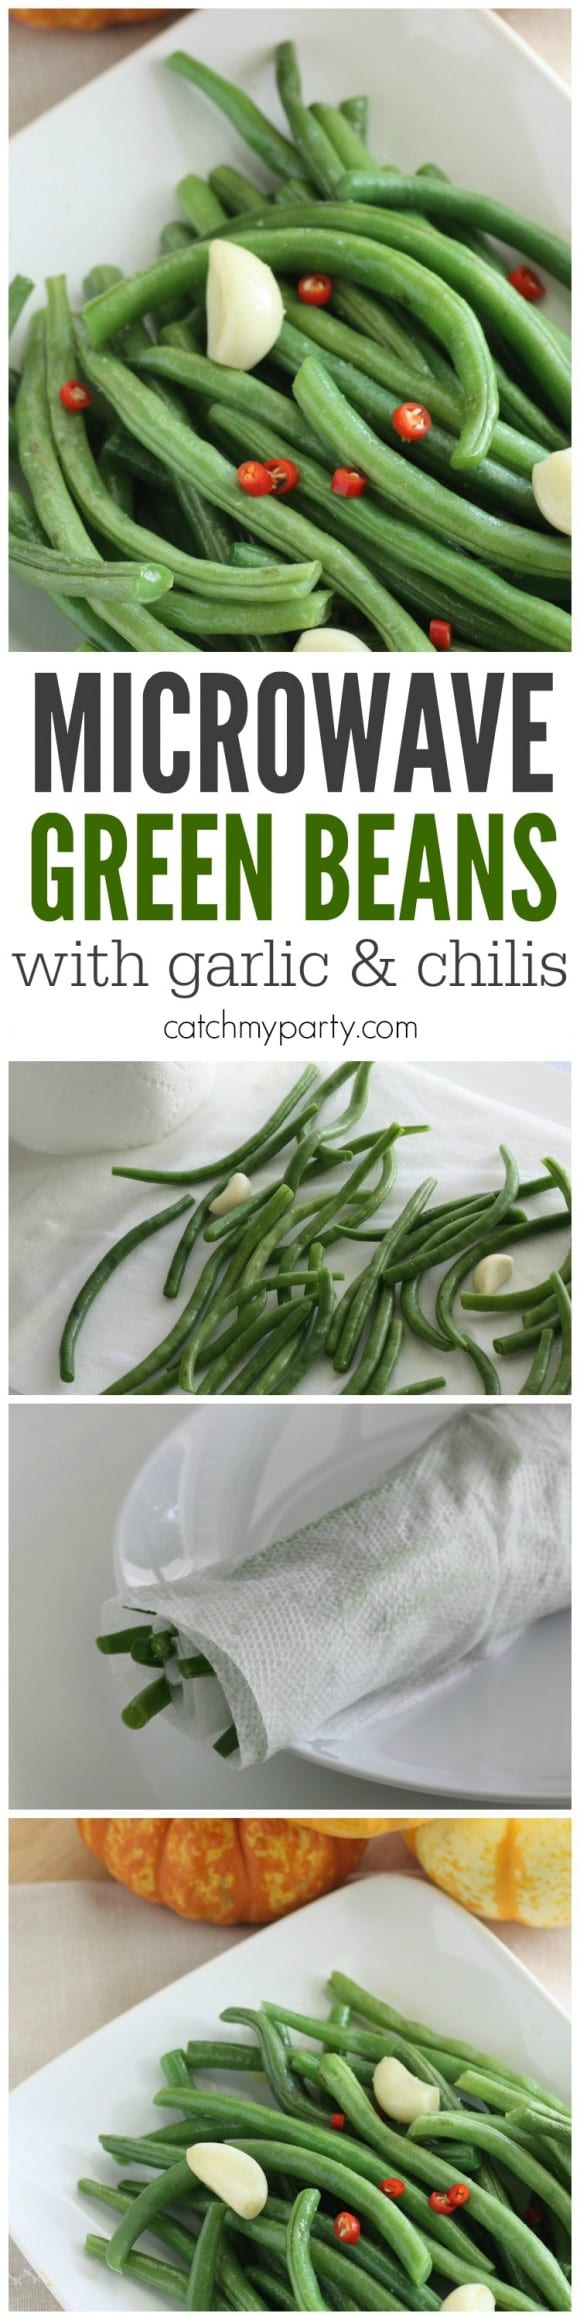 microwave-garlic-green-bean-with-garlic-and-chilis